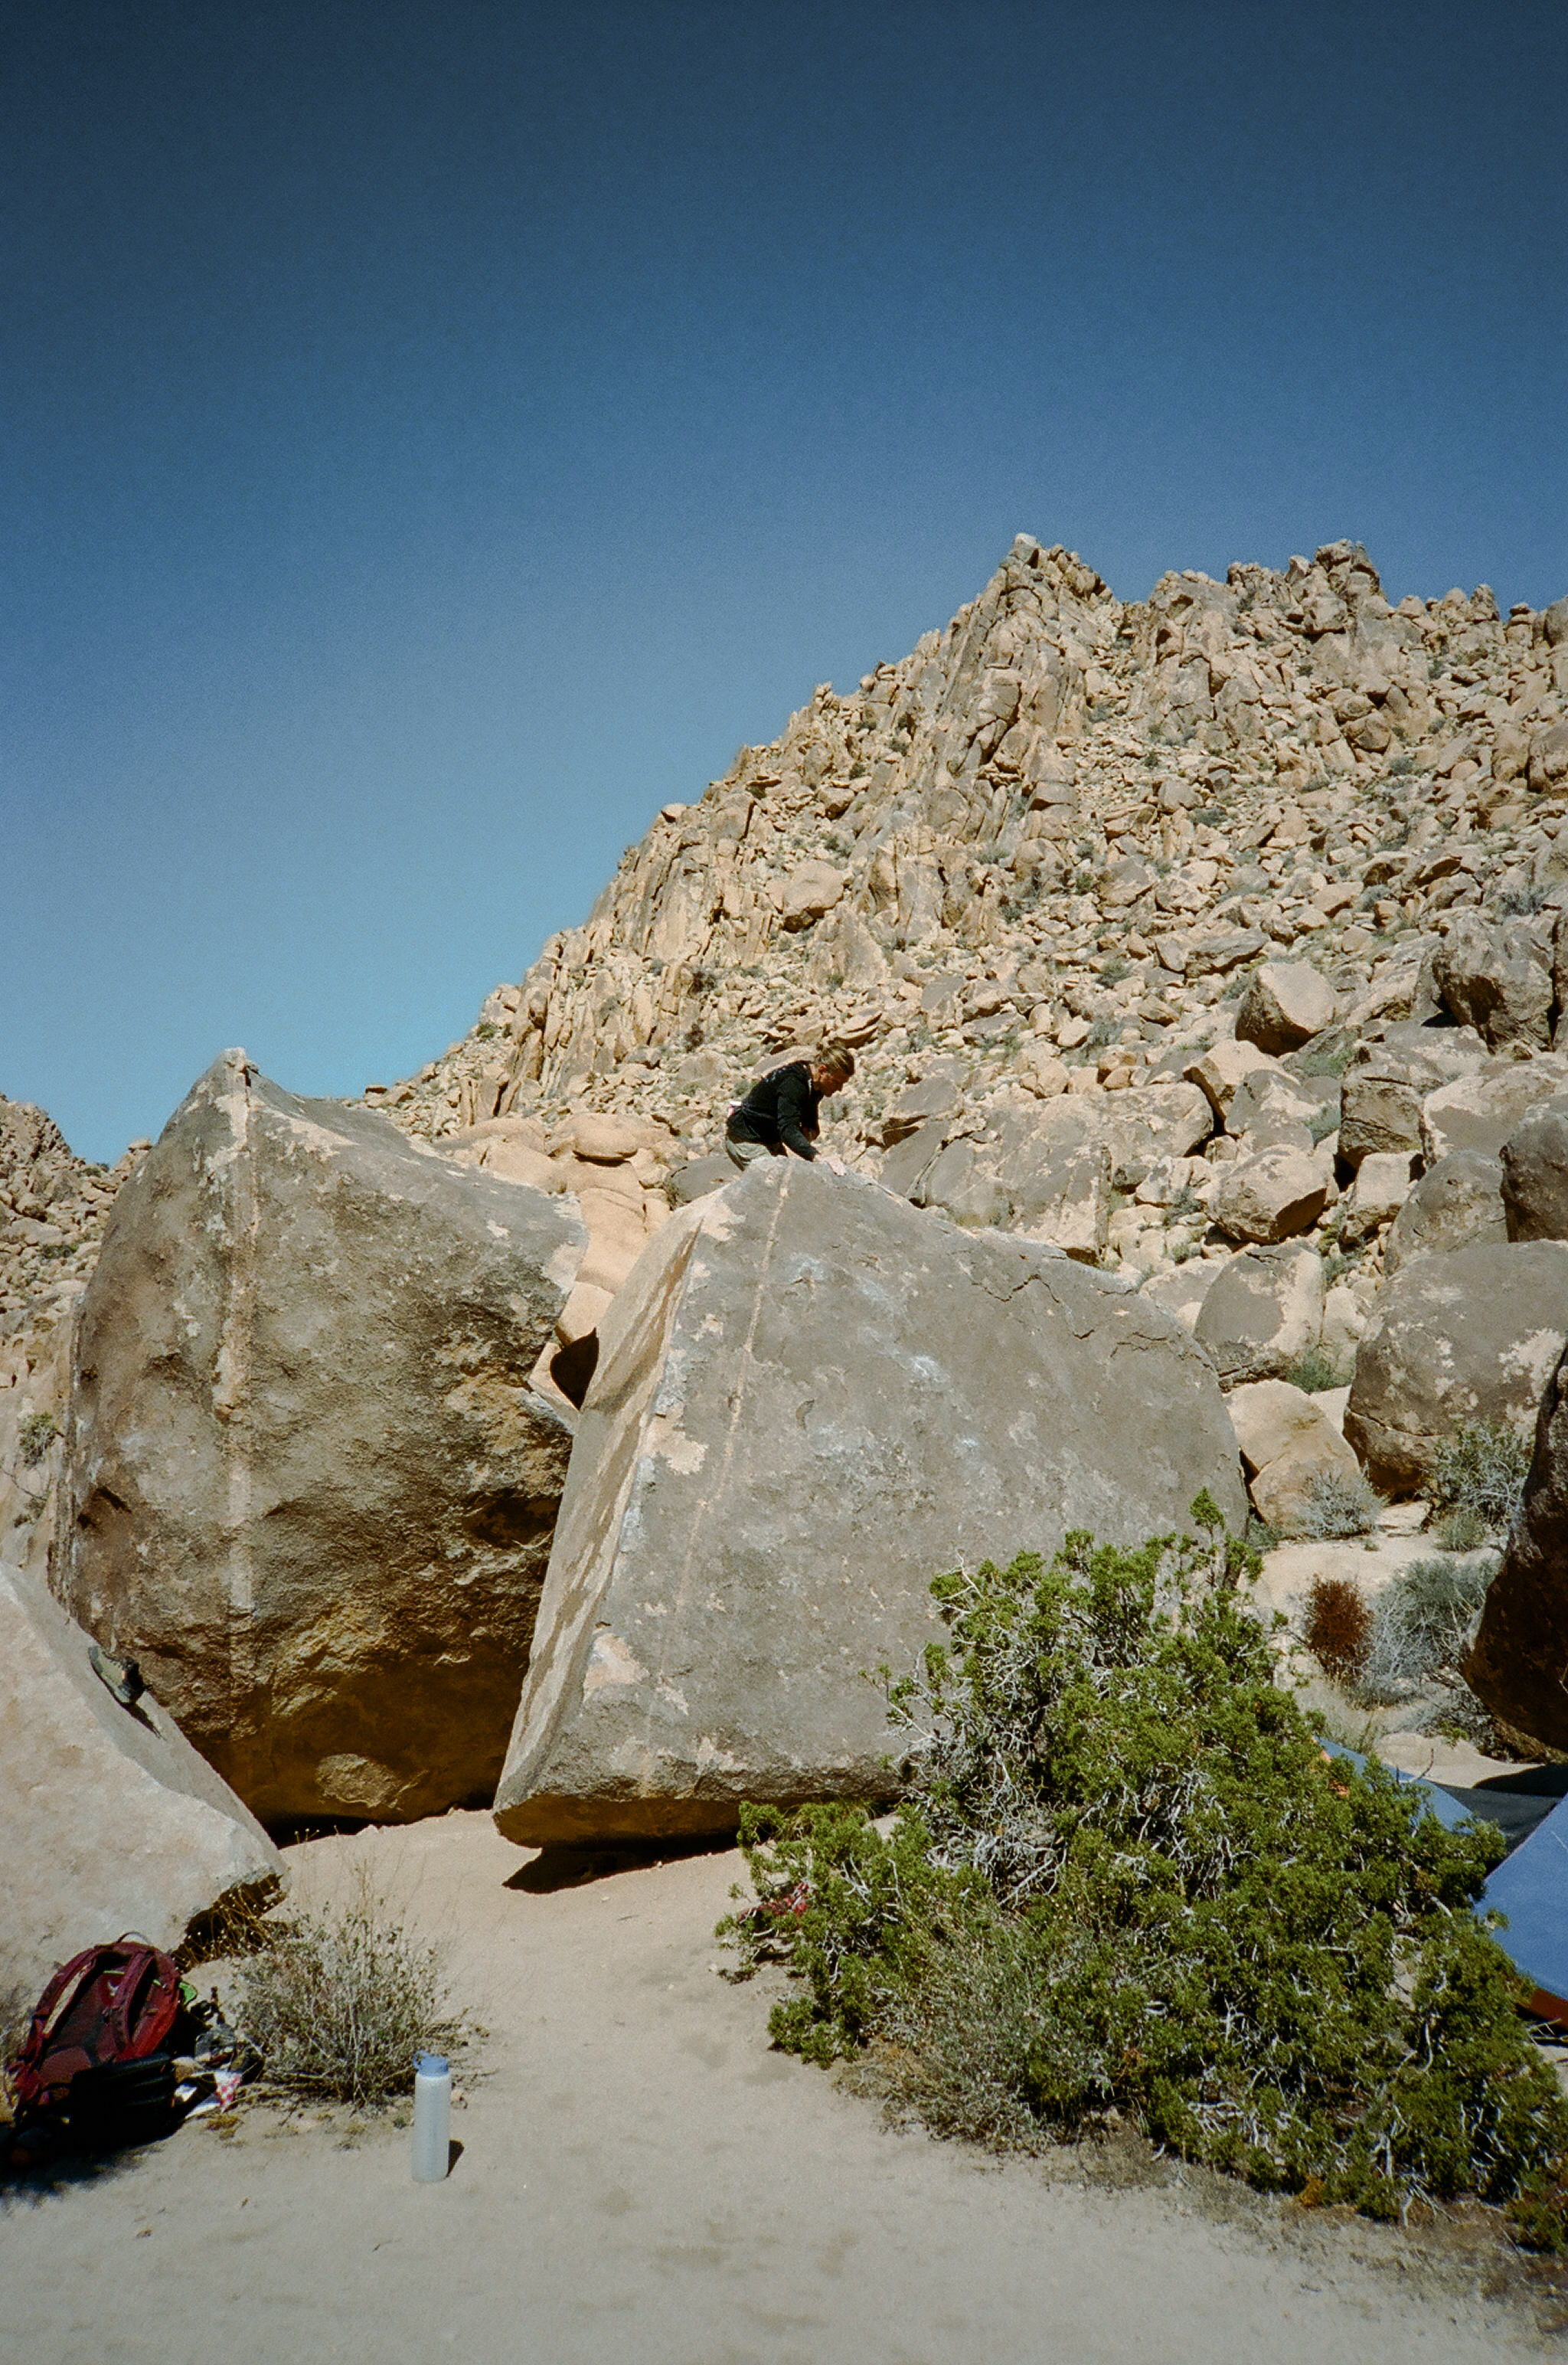 Finding the topout in Joshua Tree